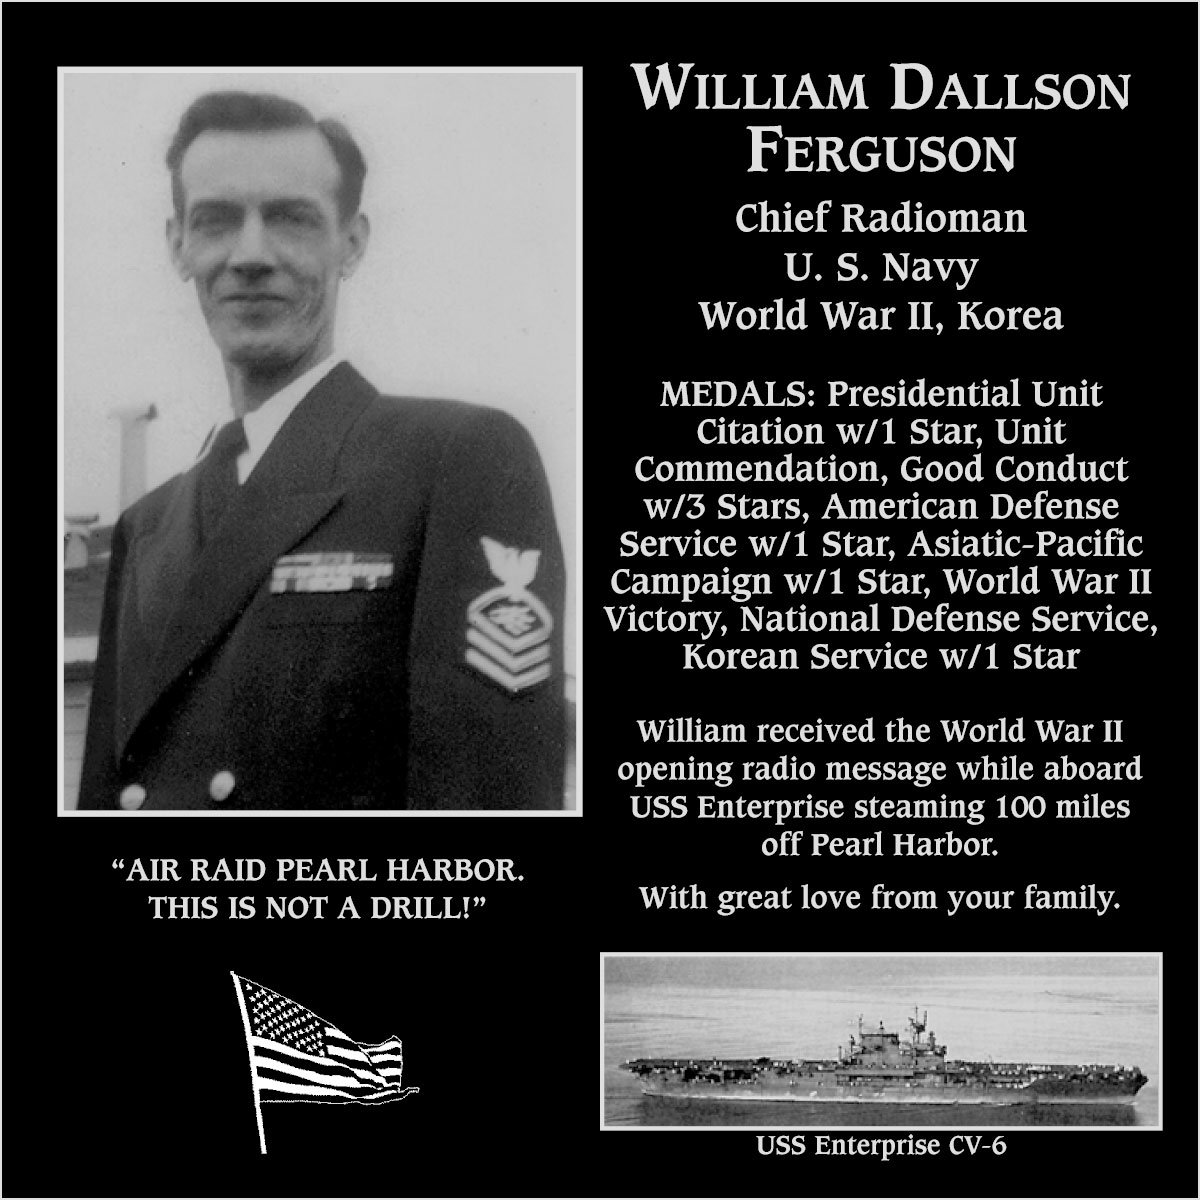 William Dallson Ferguson